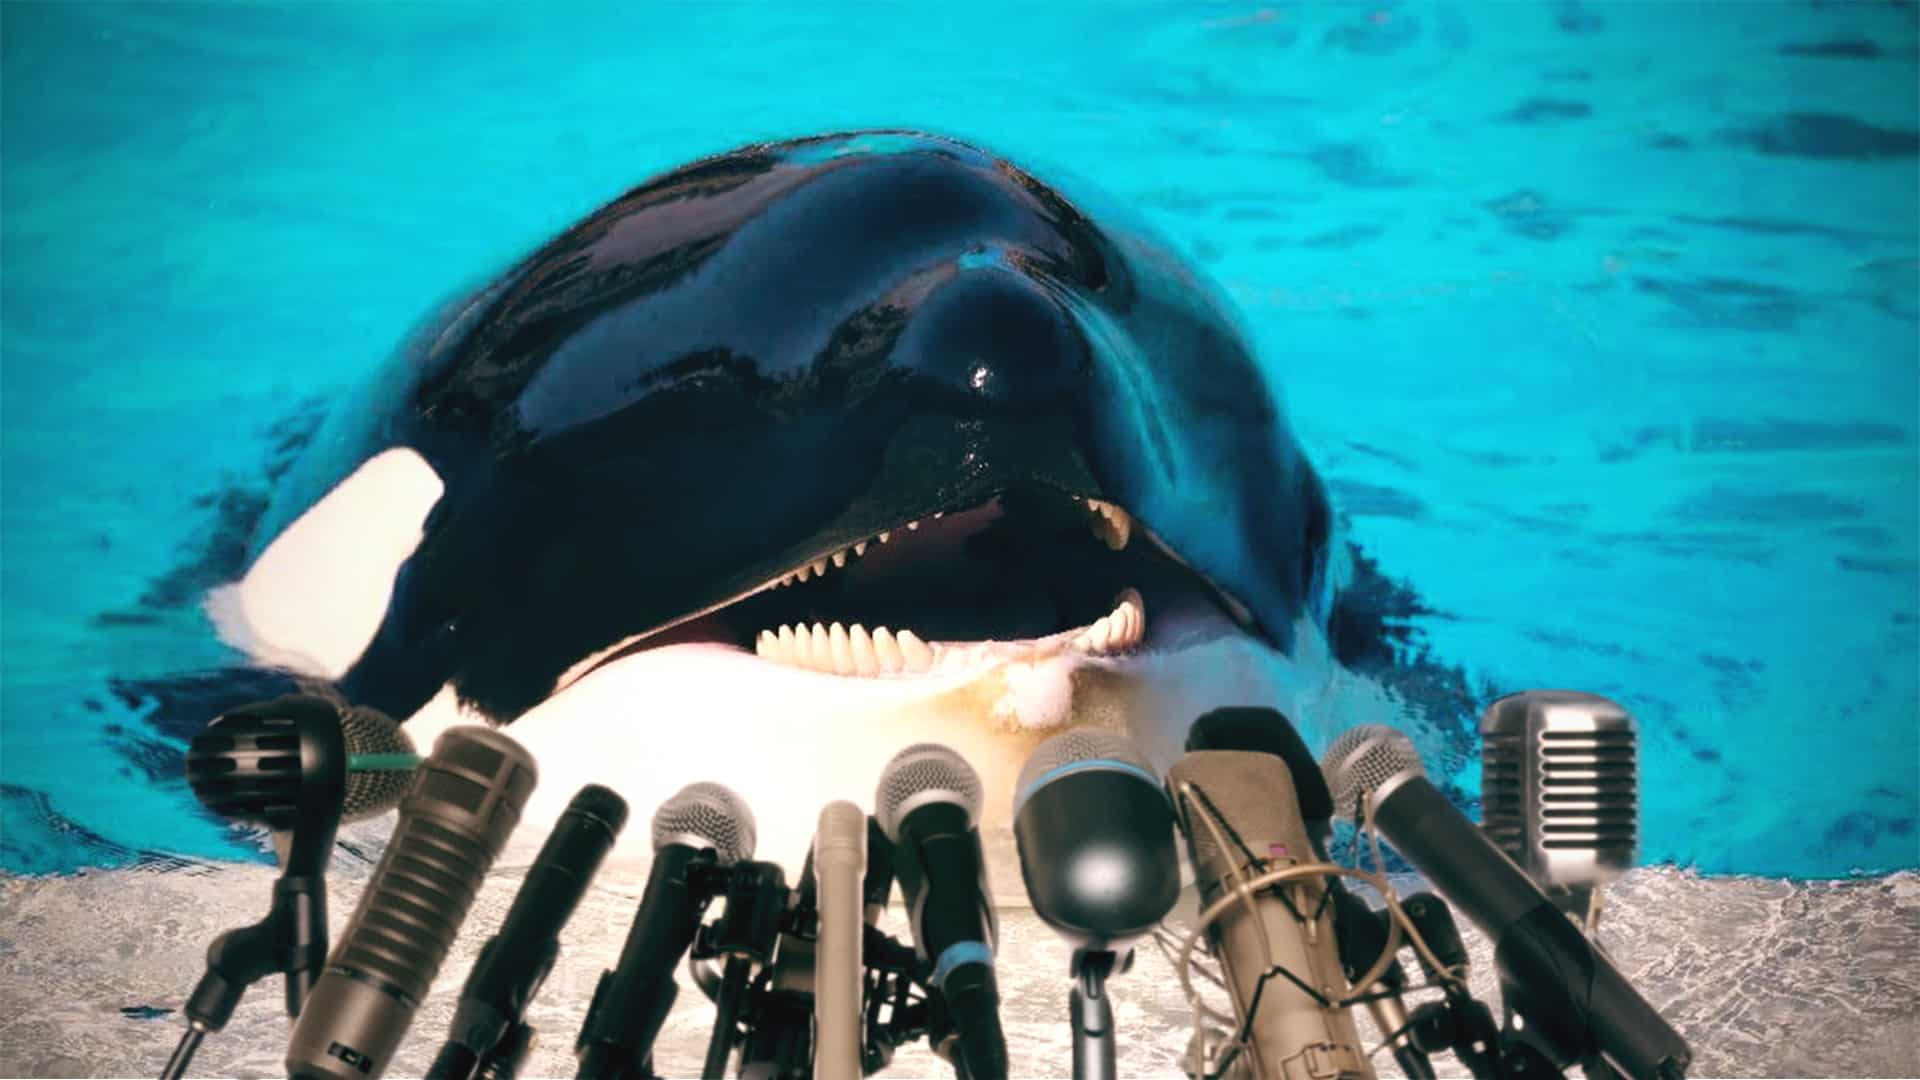 They Taught This Whale To Talk And Now It's Running For President Of The United States